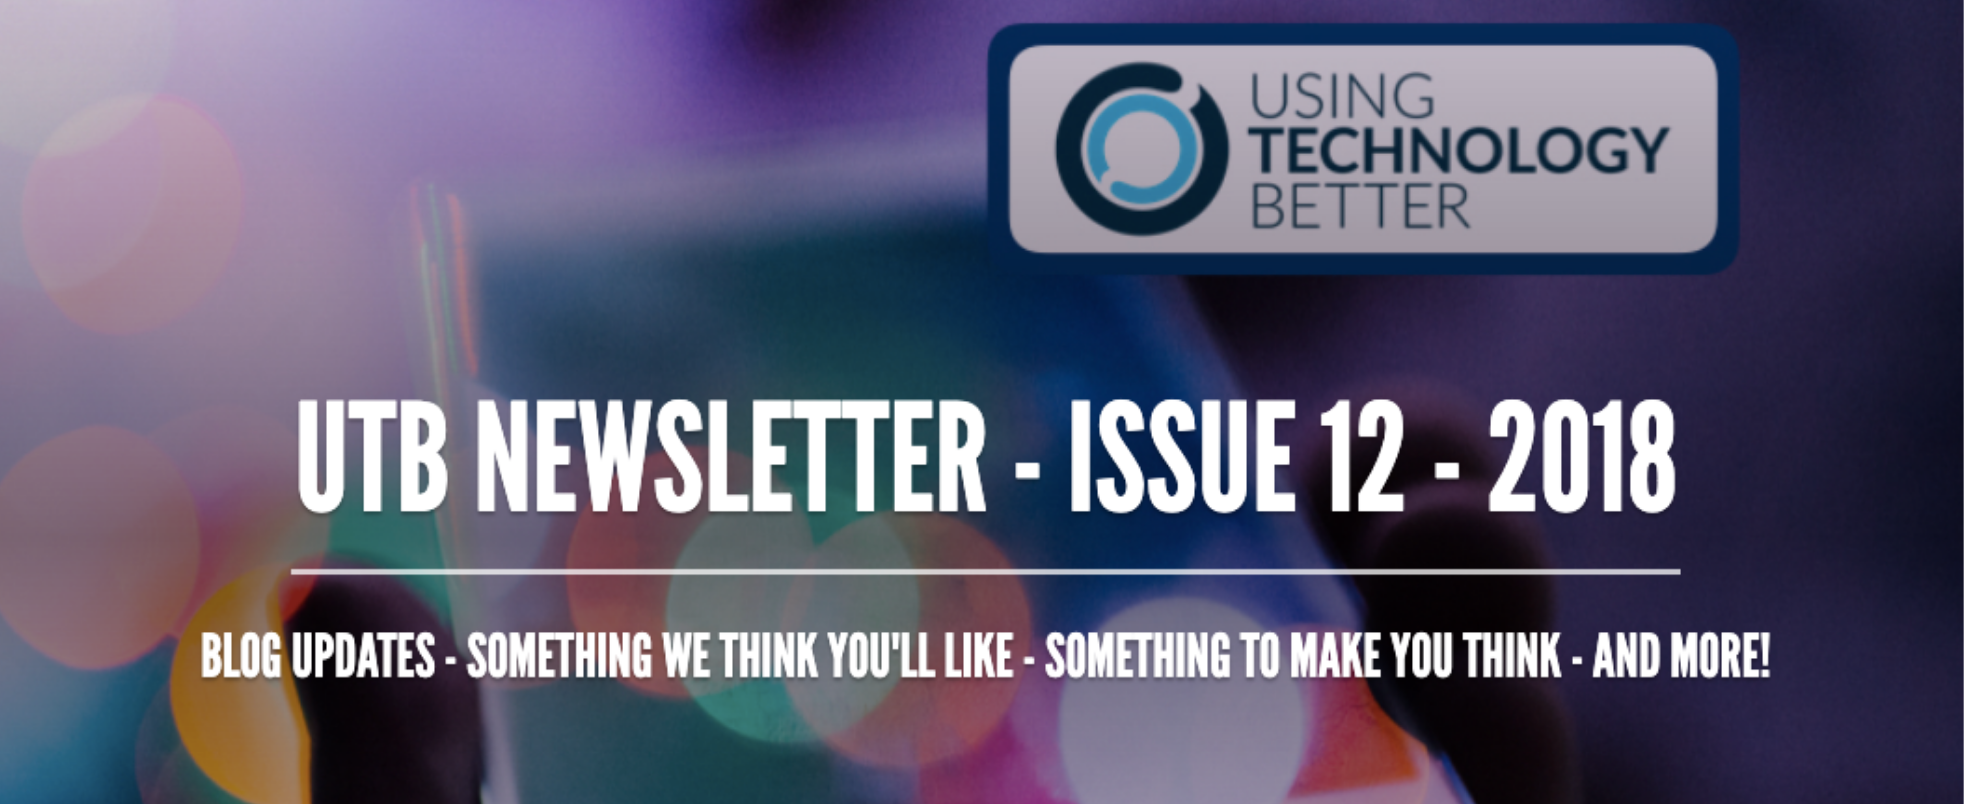 Newsletter Issue 12 - 2018